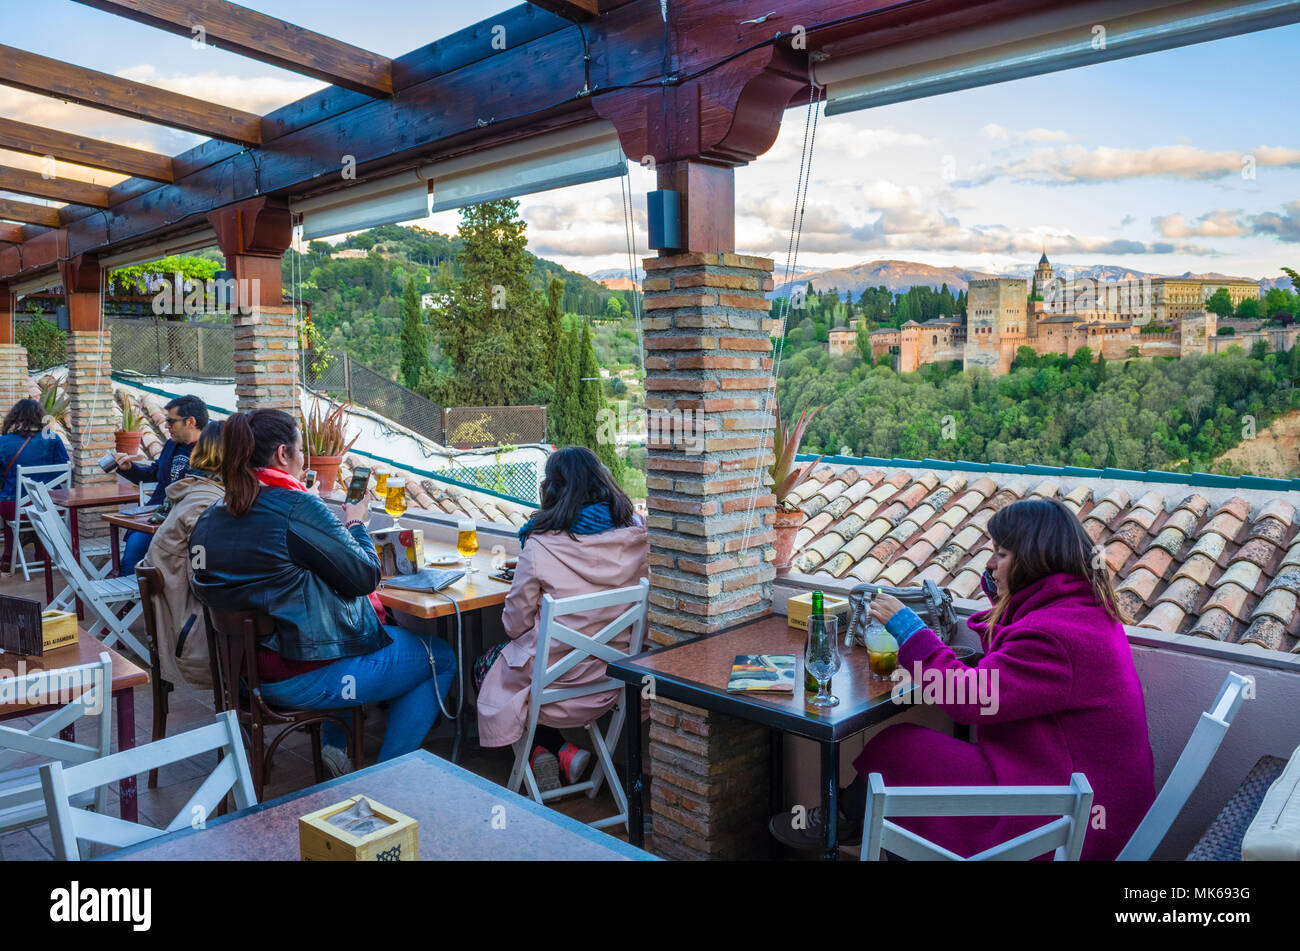 Granada, Spain: Tourists at El Balcón de San Nicolás cafe and restaurant in the Albaicin district old town, enjoy a panoramic view of the Unesco liste - Stock Image